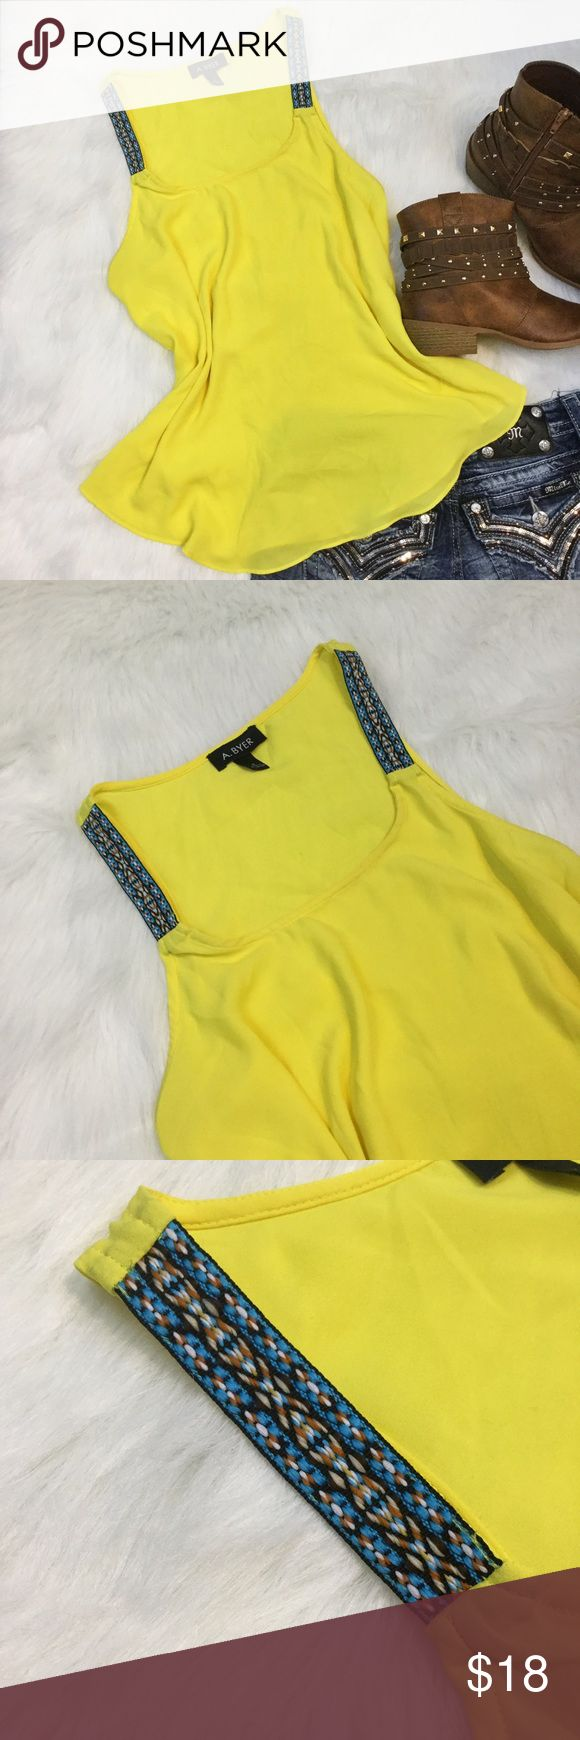 Sheer yellow tank top Sheer yellow tank top with thread print straps in he front. A. Byer Tops Tank Tops